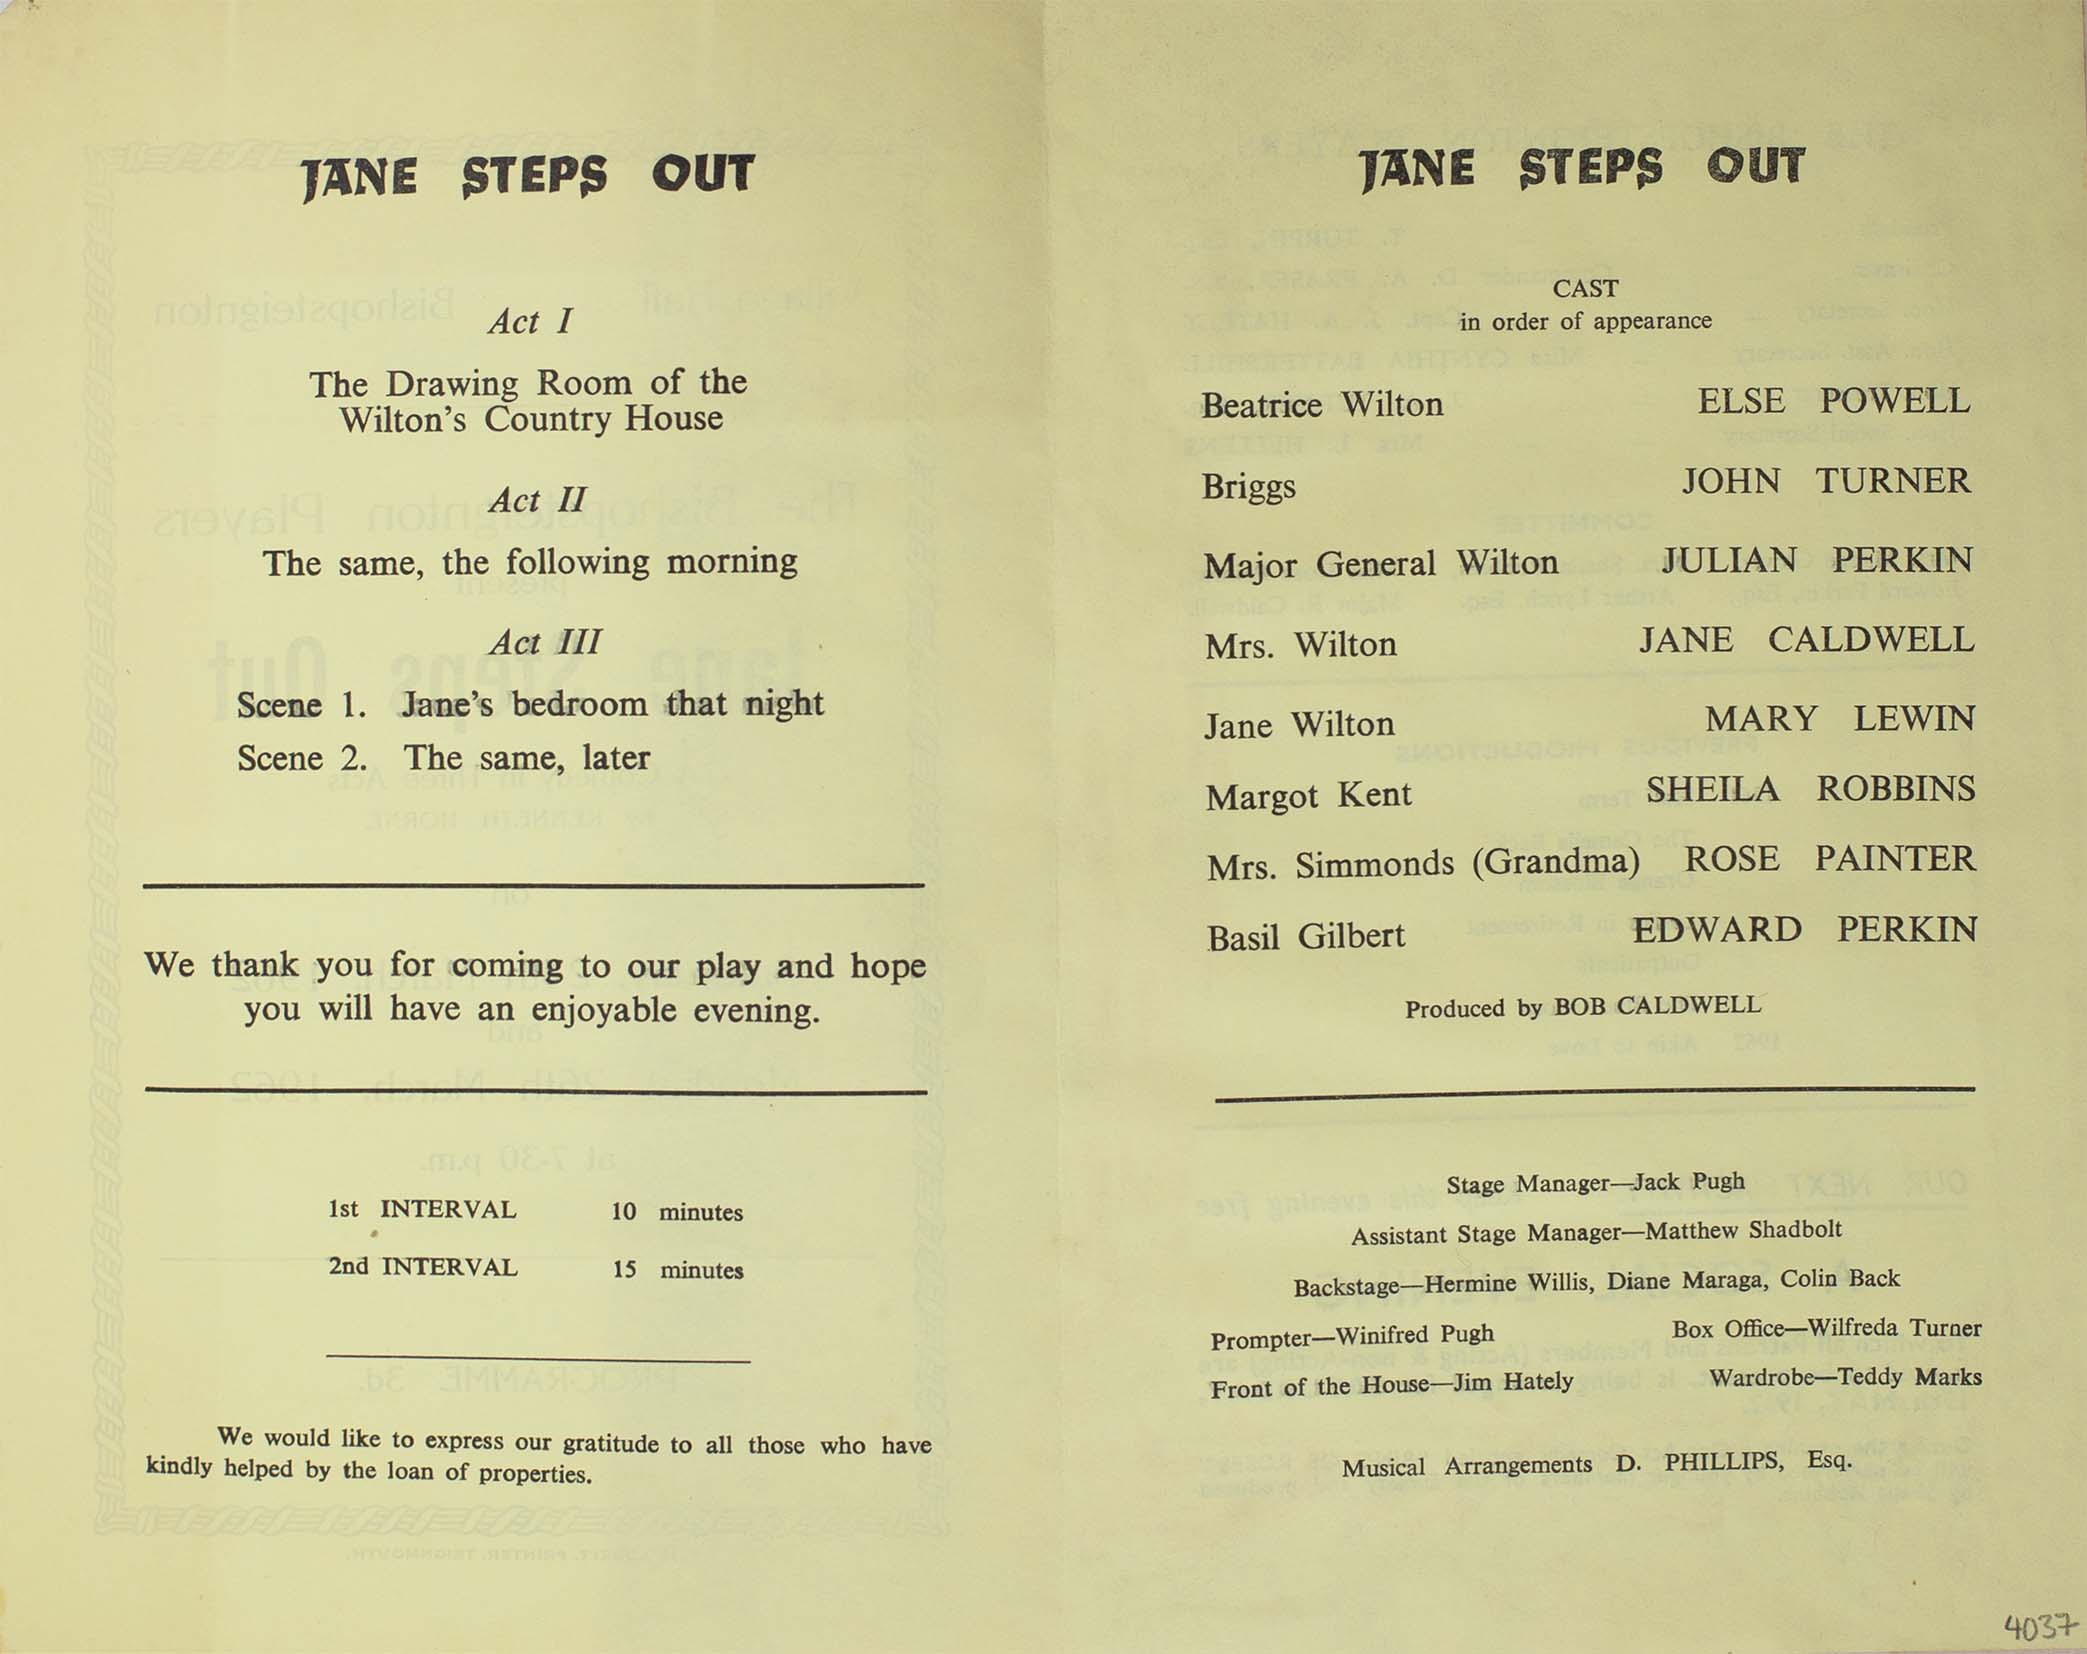 Leaflet to advertise the programme for the play 'Jane Steps Out' presented by the Bishopsteignton Players inside